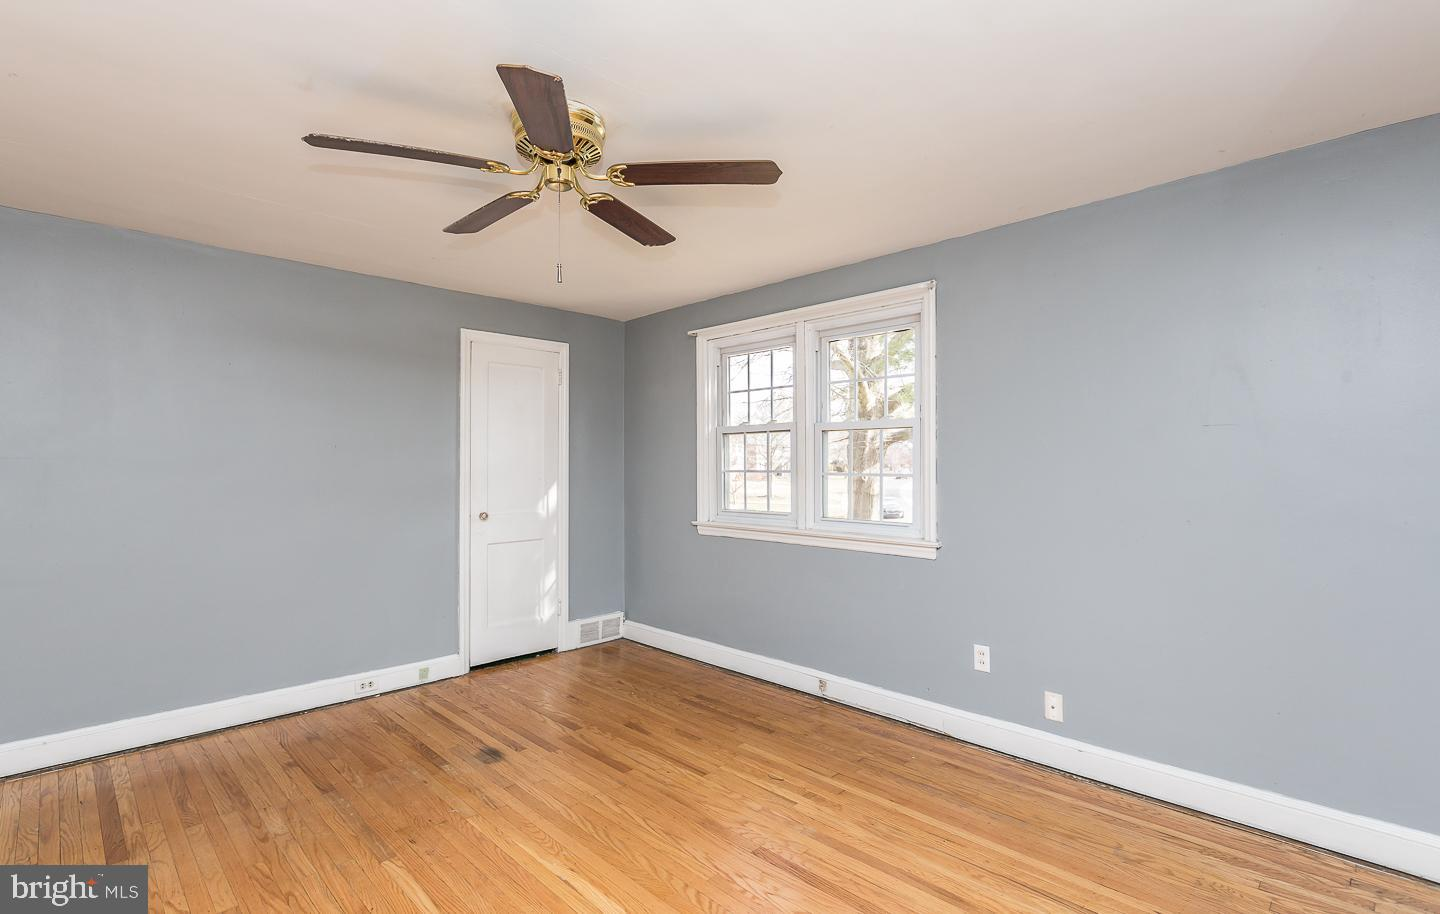 Additional photo for property listing at 515 TWIN OAKS Drive Havertown, Pennsylvania 19083 Estados Unidos